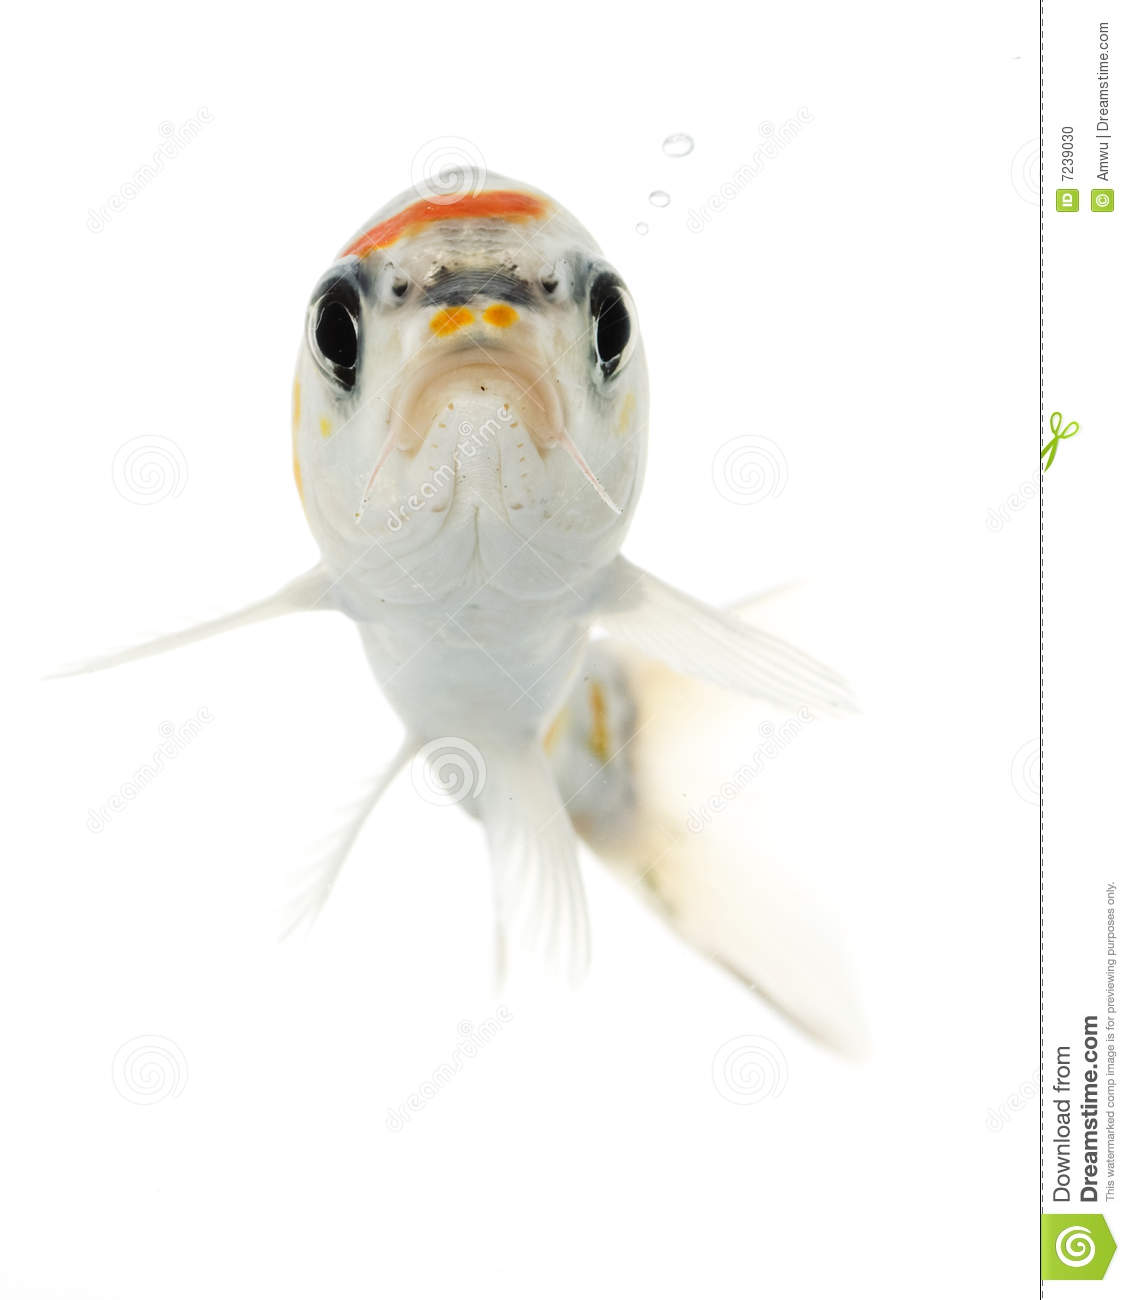 Silver koi fish stock photo image 7239030 for Silver koi fish